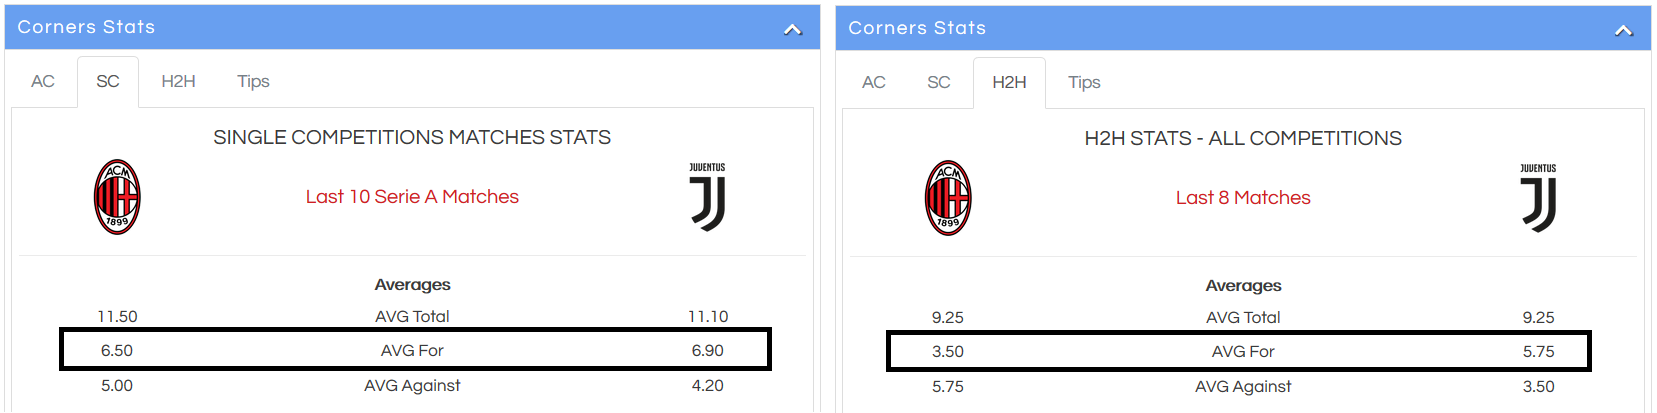 teams with most corners tips